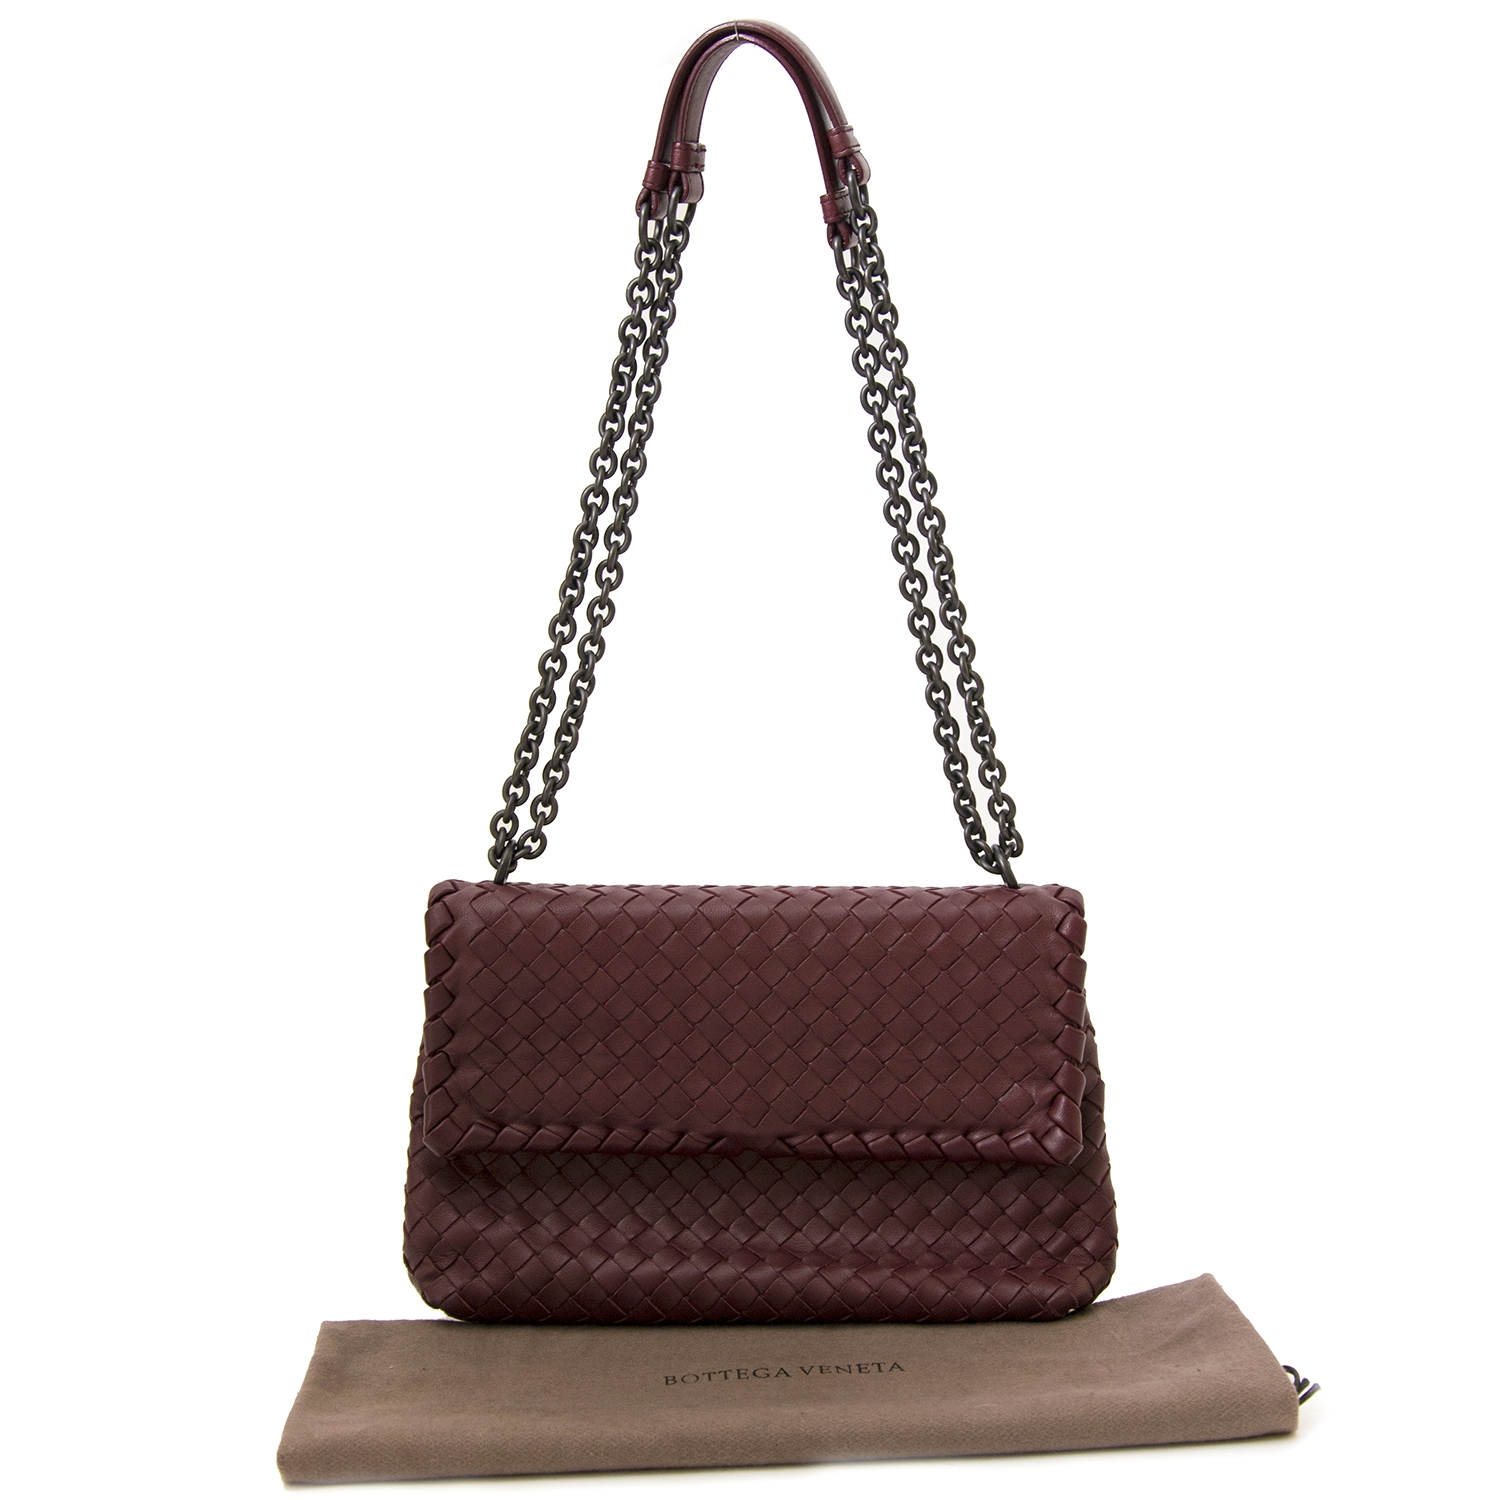 Bottega Veneta Bordeaux Intrecciato Leather Bag koop online tgen de beste  prijs jou tweedehands Bottega Veneta Bordeaux Intrecciato Leather Bag fe8f8bfc858c2